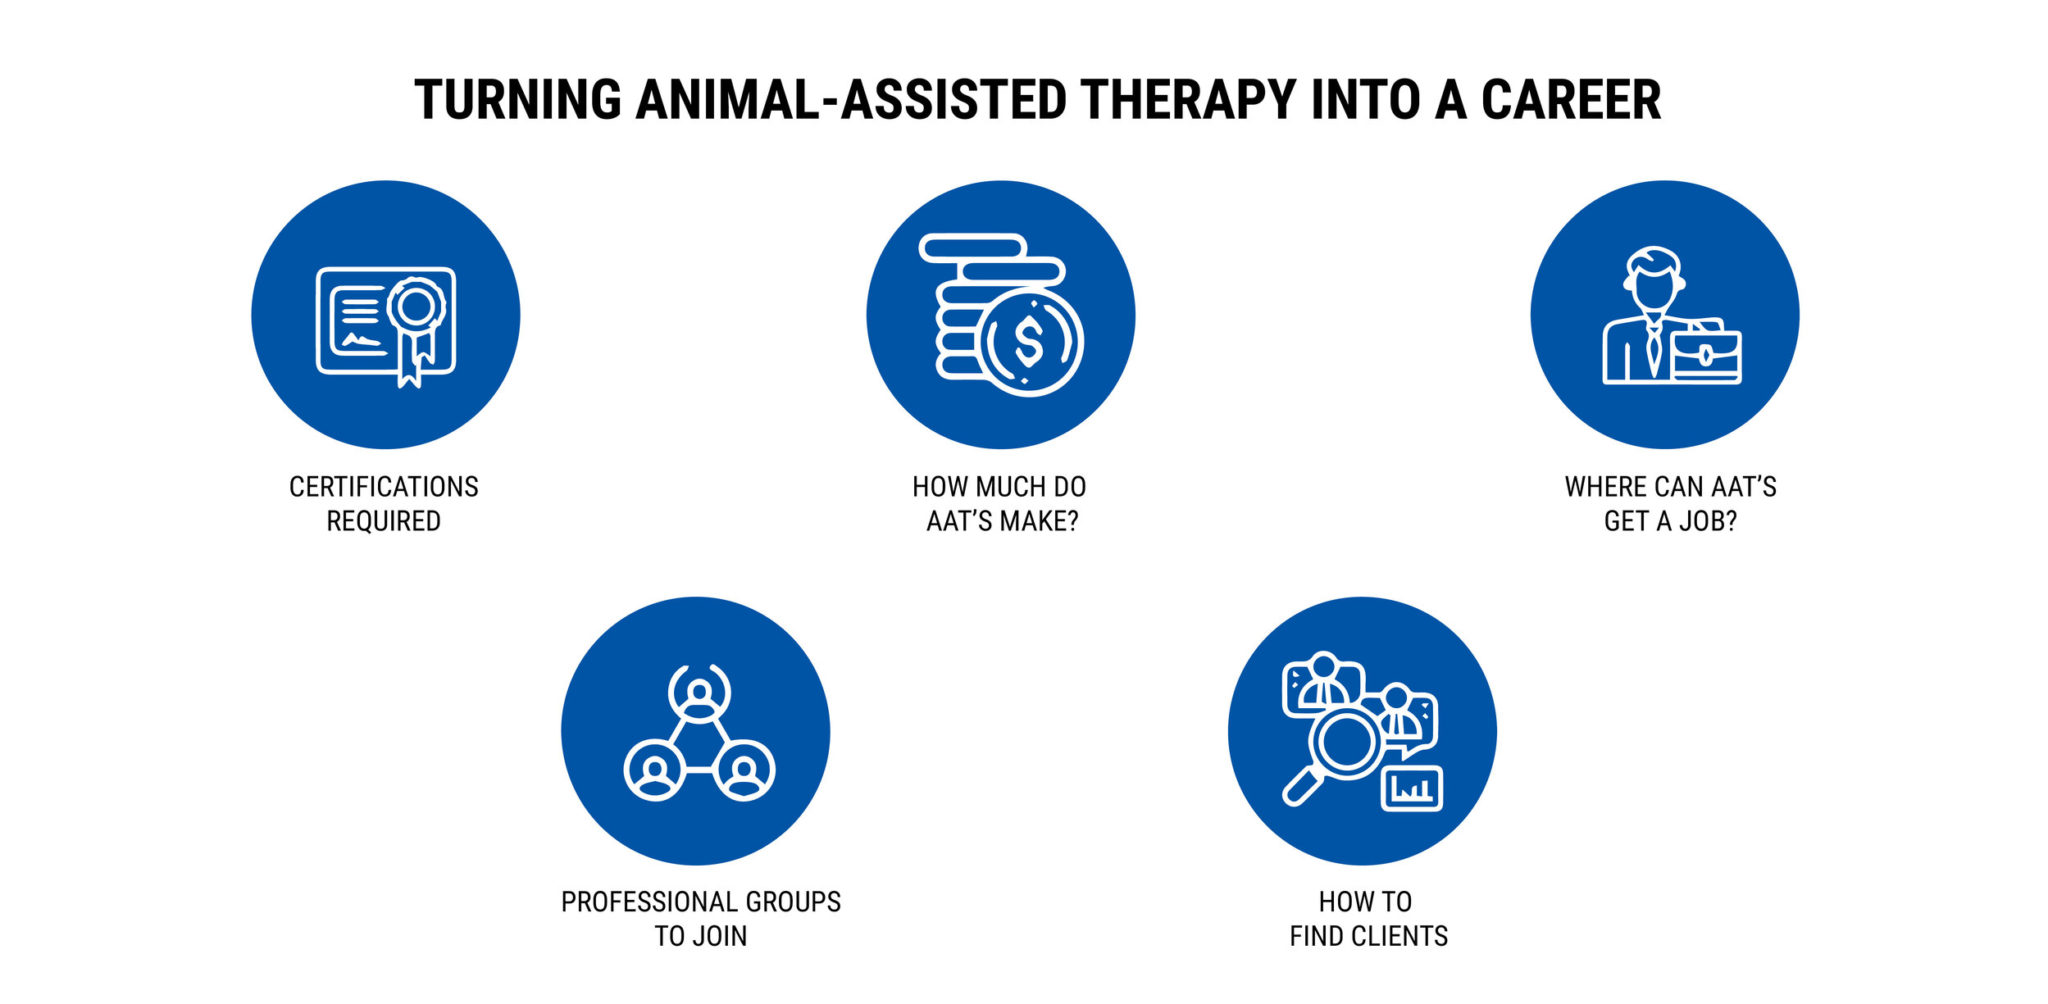 TURNING ANIMAL-ASSISTED THERAPY INTO A CAREER